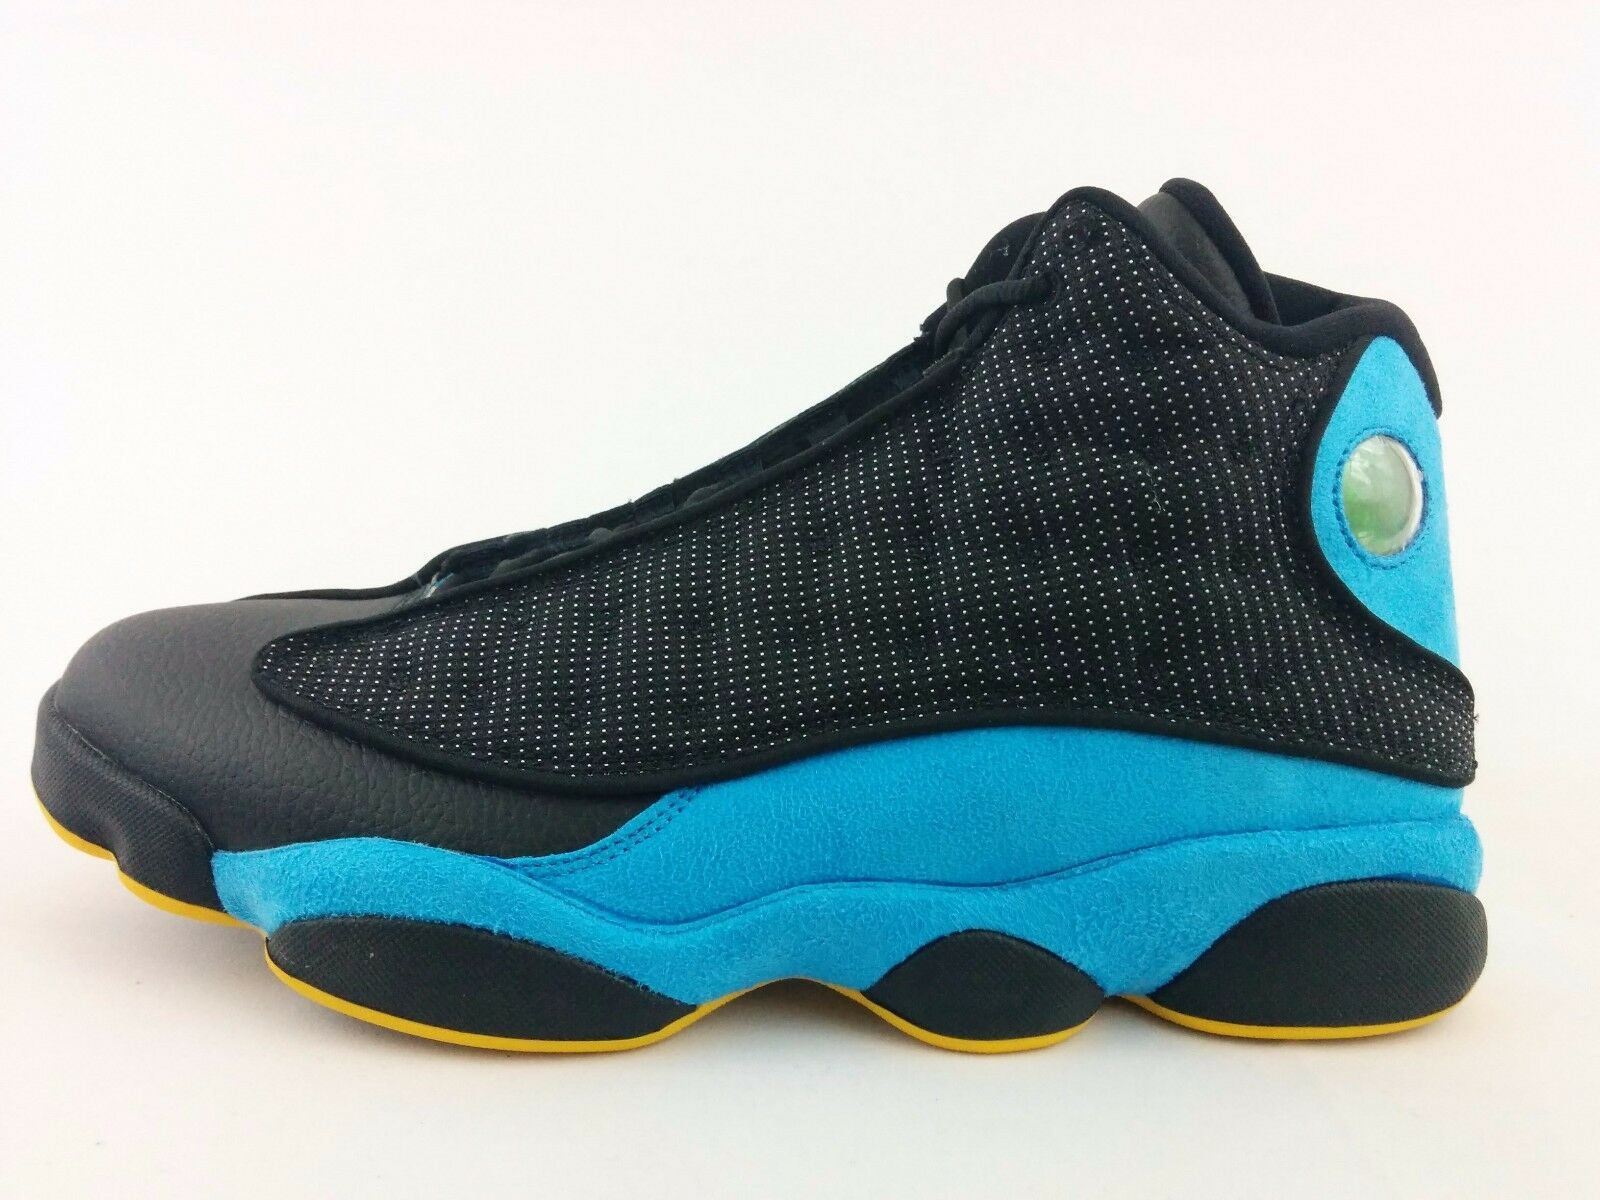 AIR JORDAN 13 XIII RETRO CP3 PE 823902-015 HORNETS AWAY NEW SIZE 10.5 DS